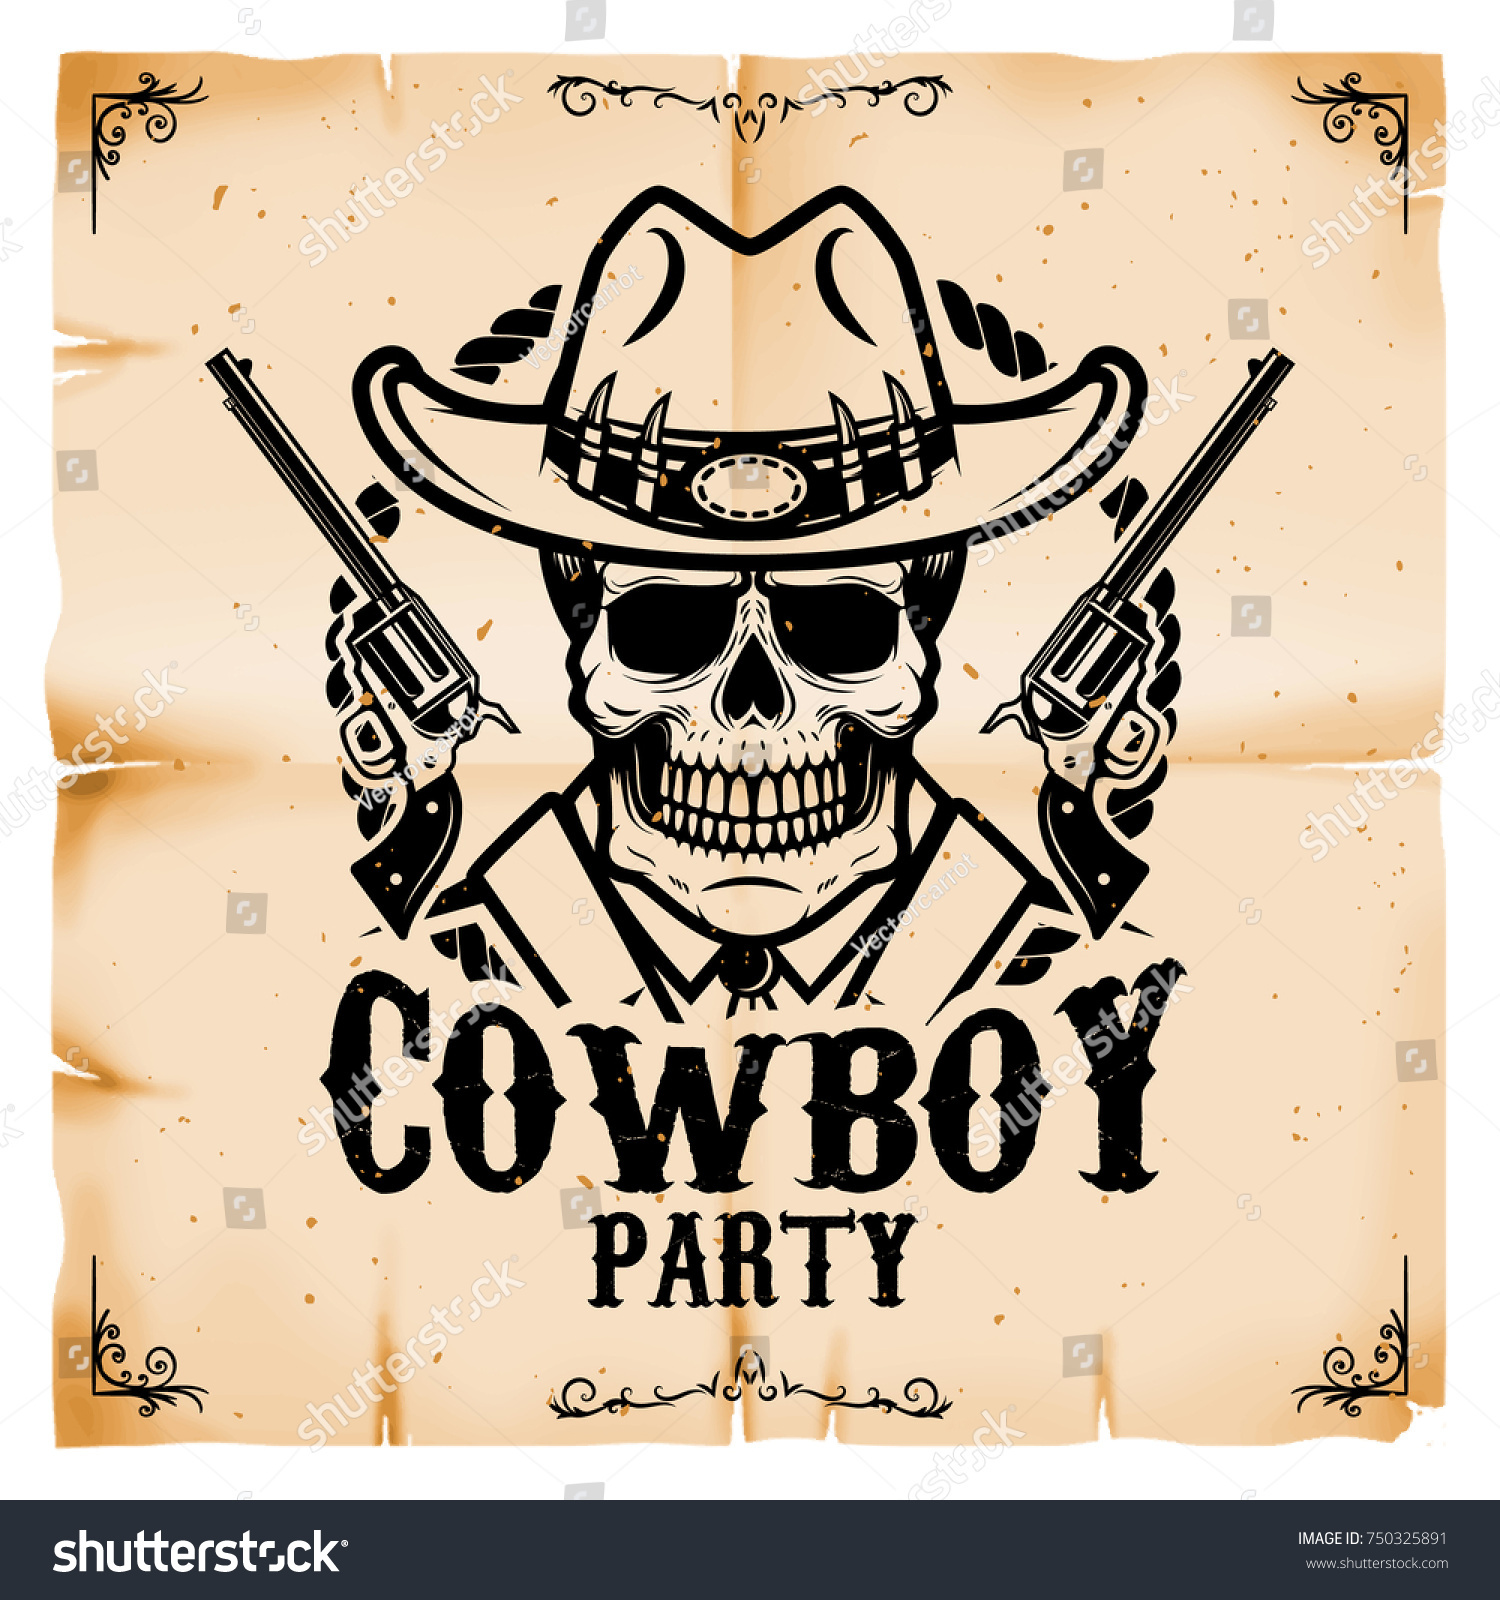 cowboy party poster template old paper stock vector royalty free